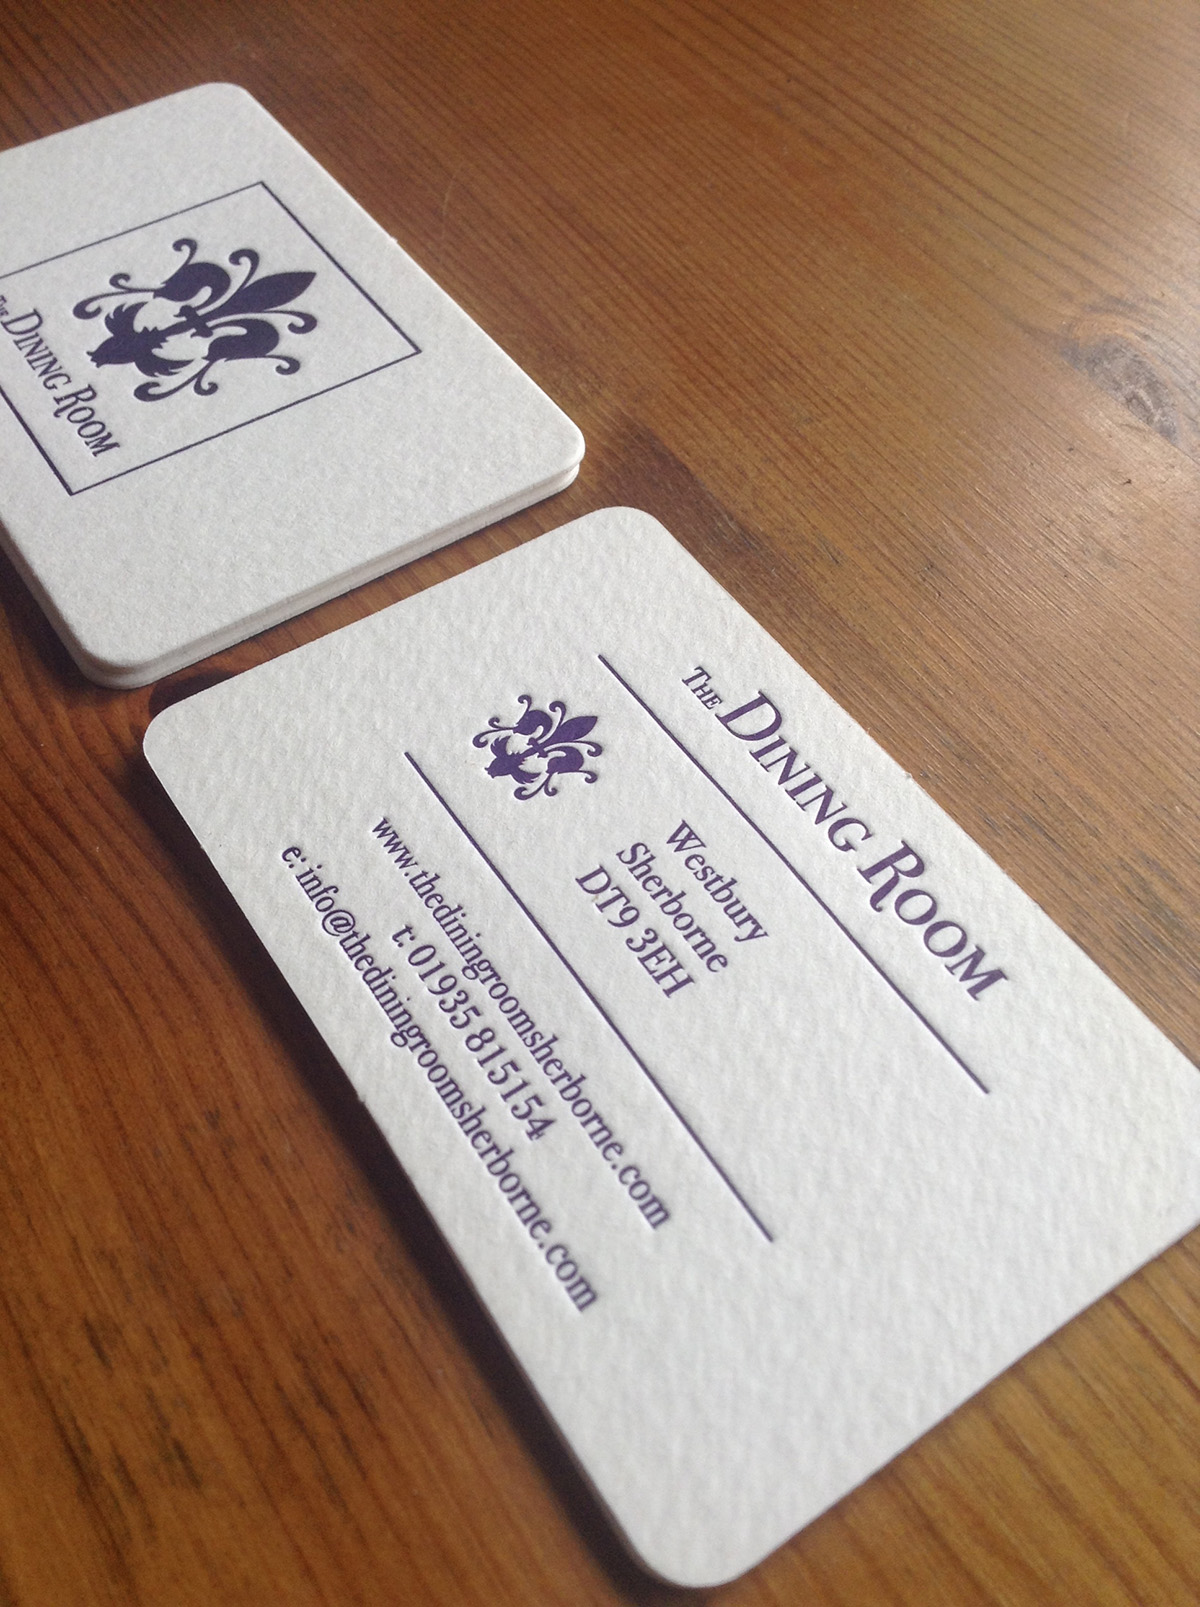 The Dining Room Sherborne Business Card Design by Digiwool